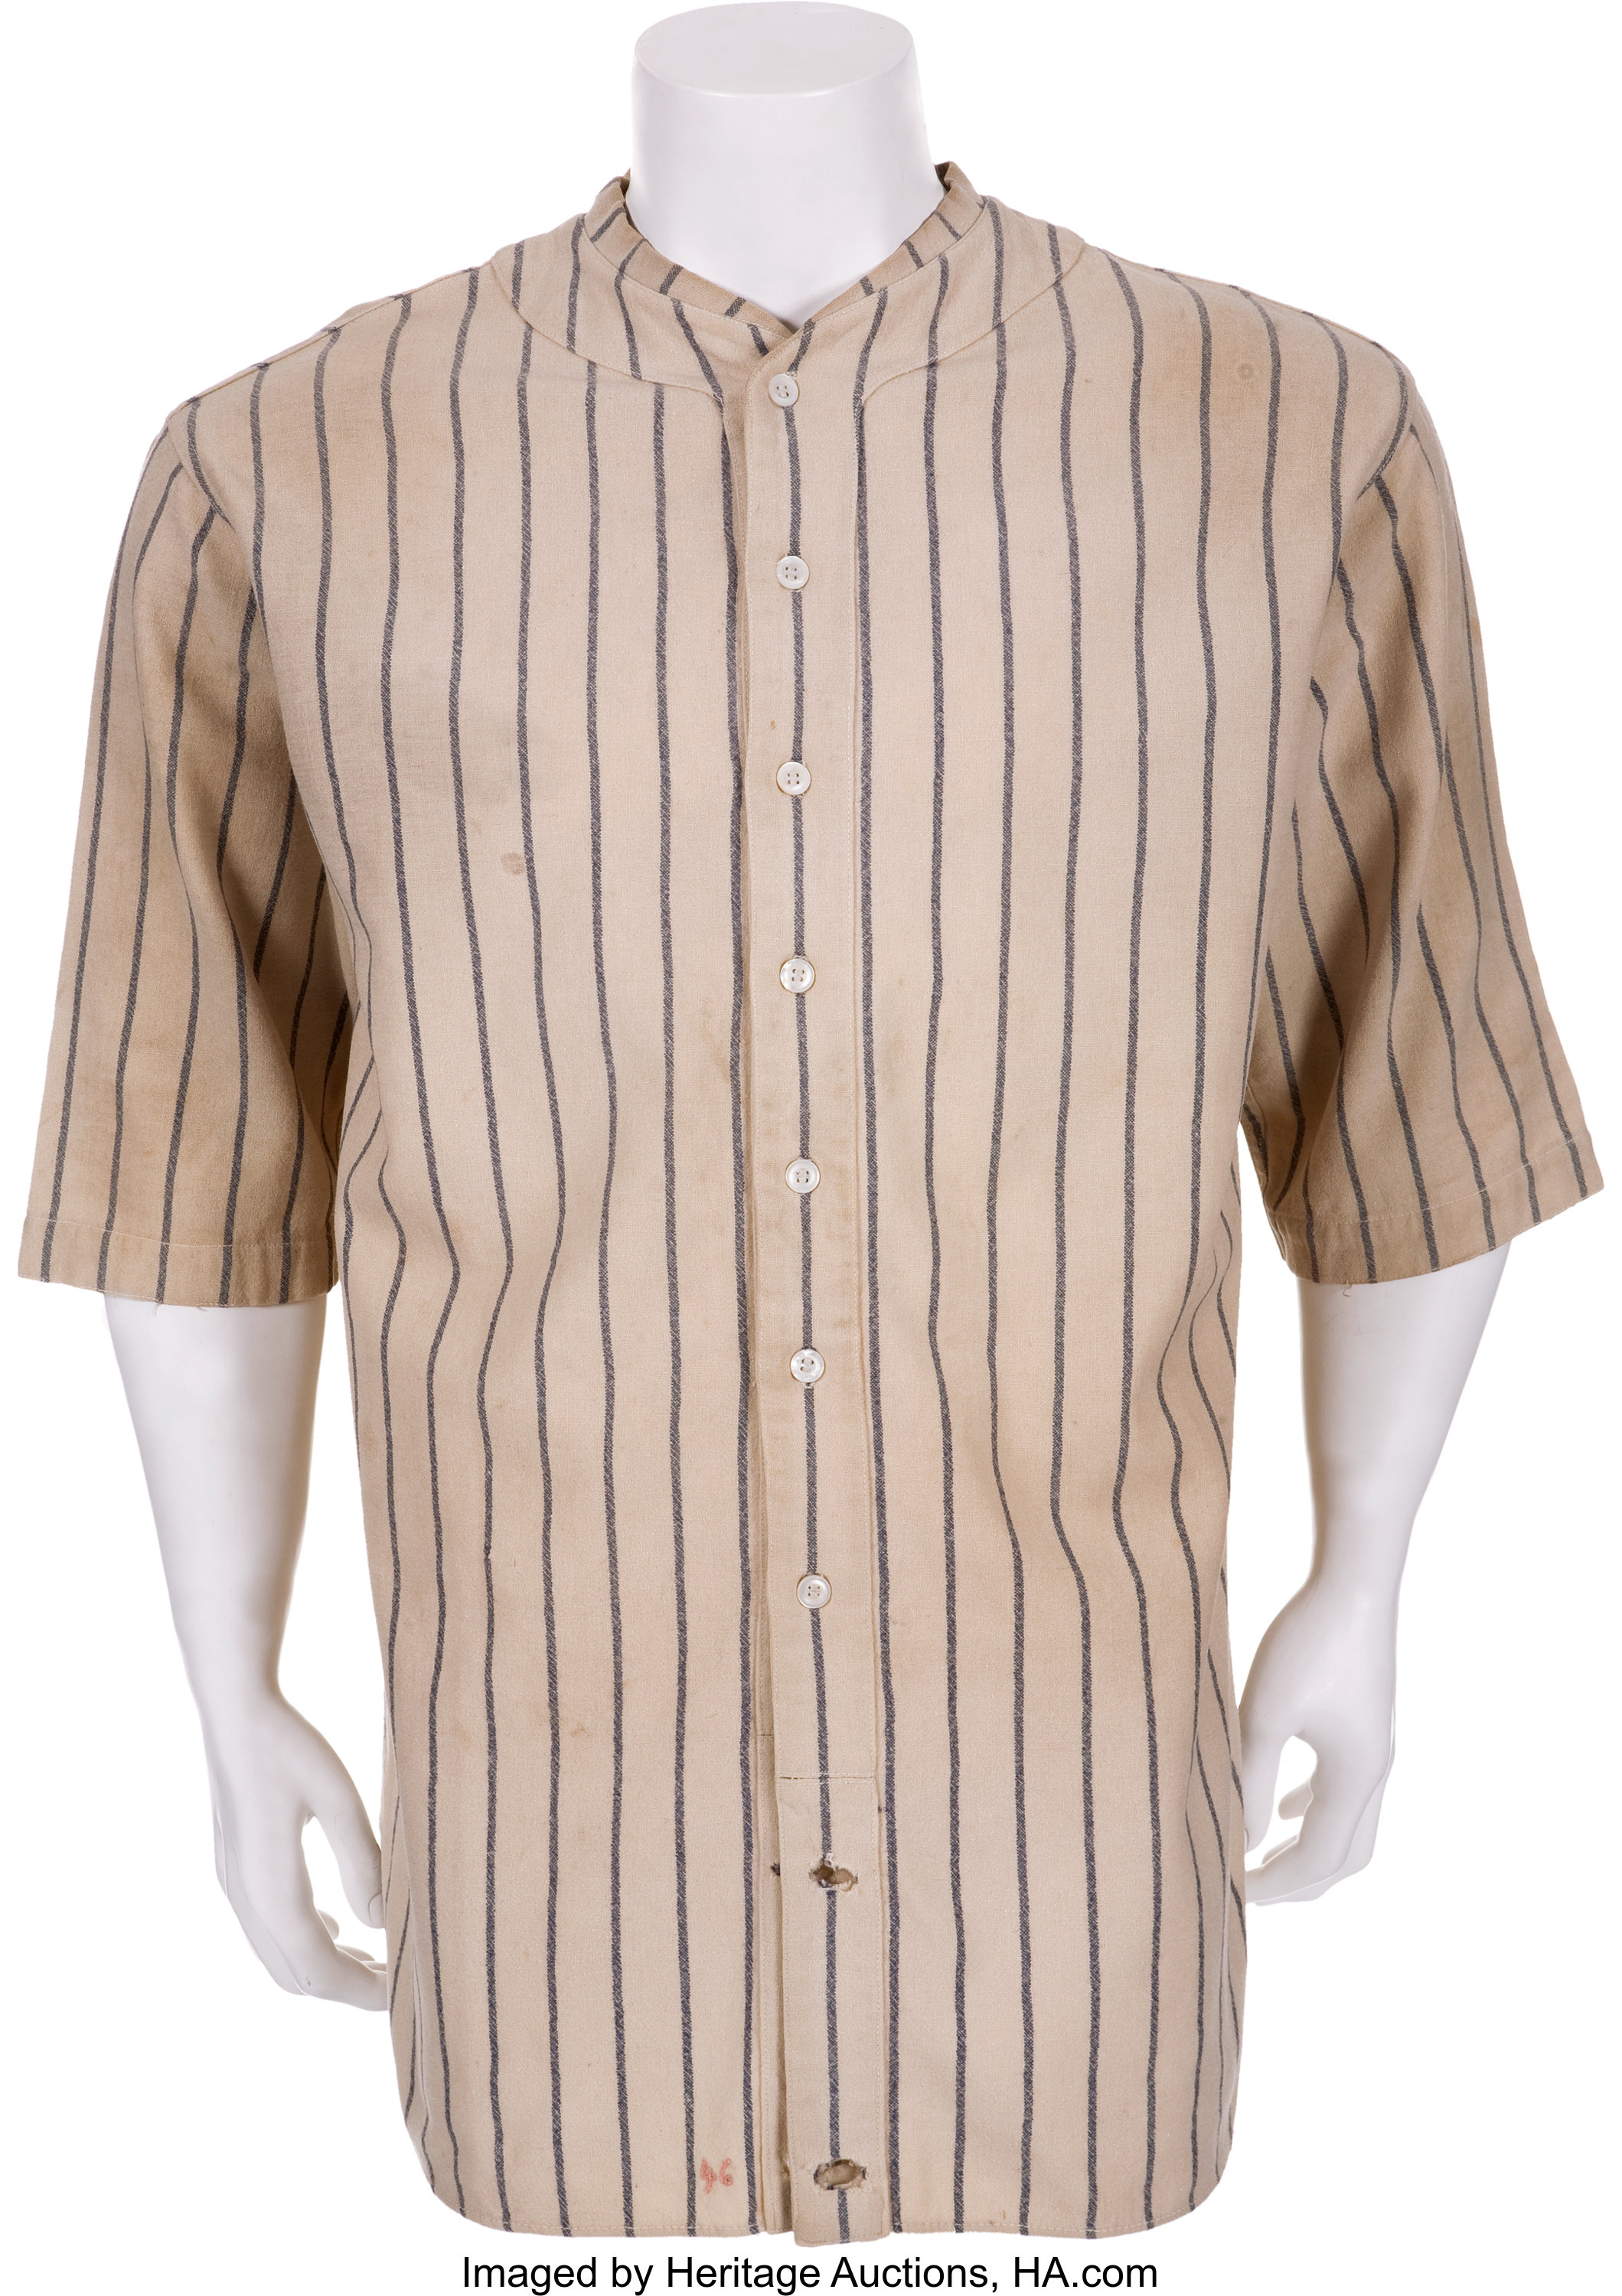 finest selection f0d45 b55d0 1927 Lou Gehrig Game Worn New York Yankees Jersey ...